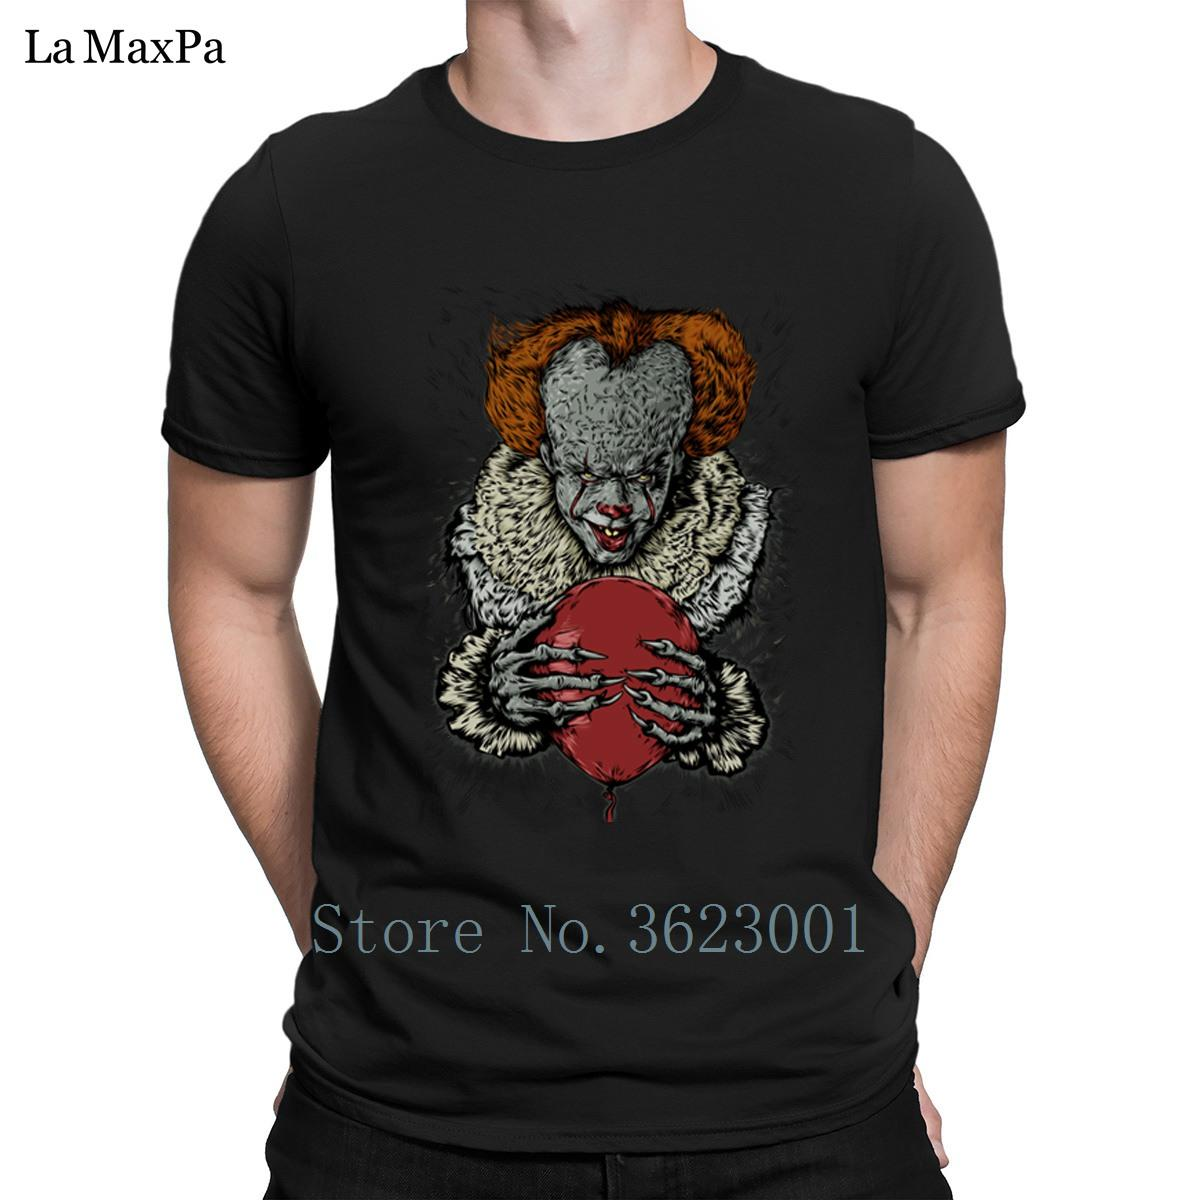 f3ce881f8 Custom Leisure T Shirt Spring Autumn Evil Clown T Shirt For Men Humor  Clever Tshirt Cotton Men Tee Shirt Crazy One Tee A Day Random Graphic Tees  From ...